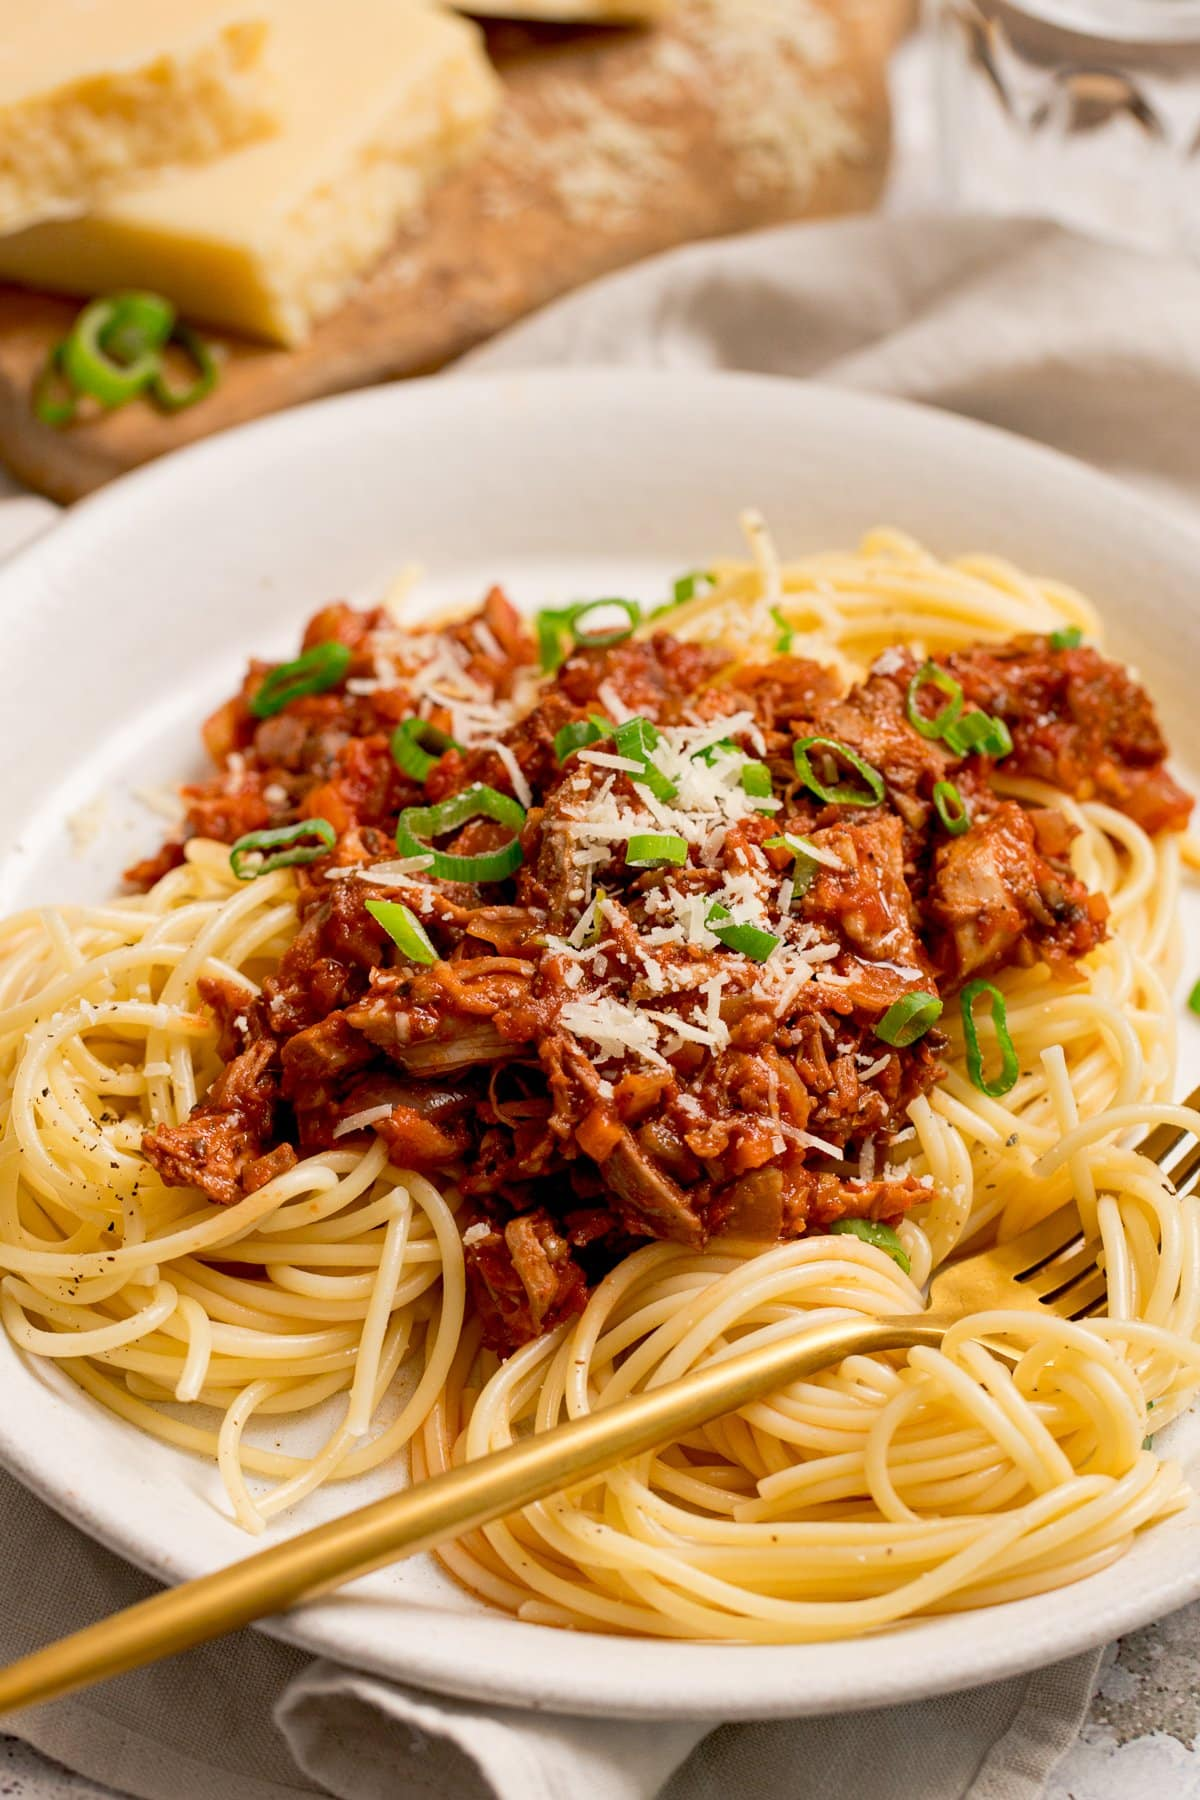 leftover turkey bolognese on a white plate. Gold fork resting on the plate.